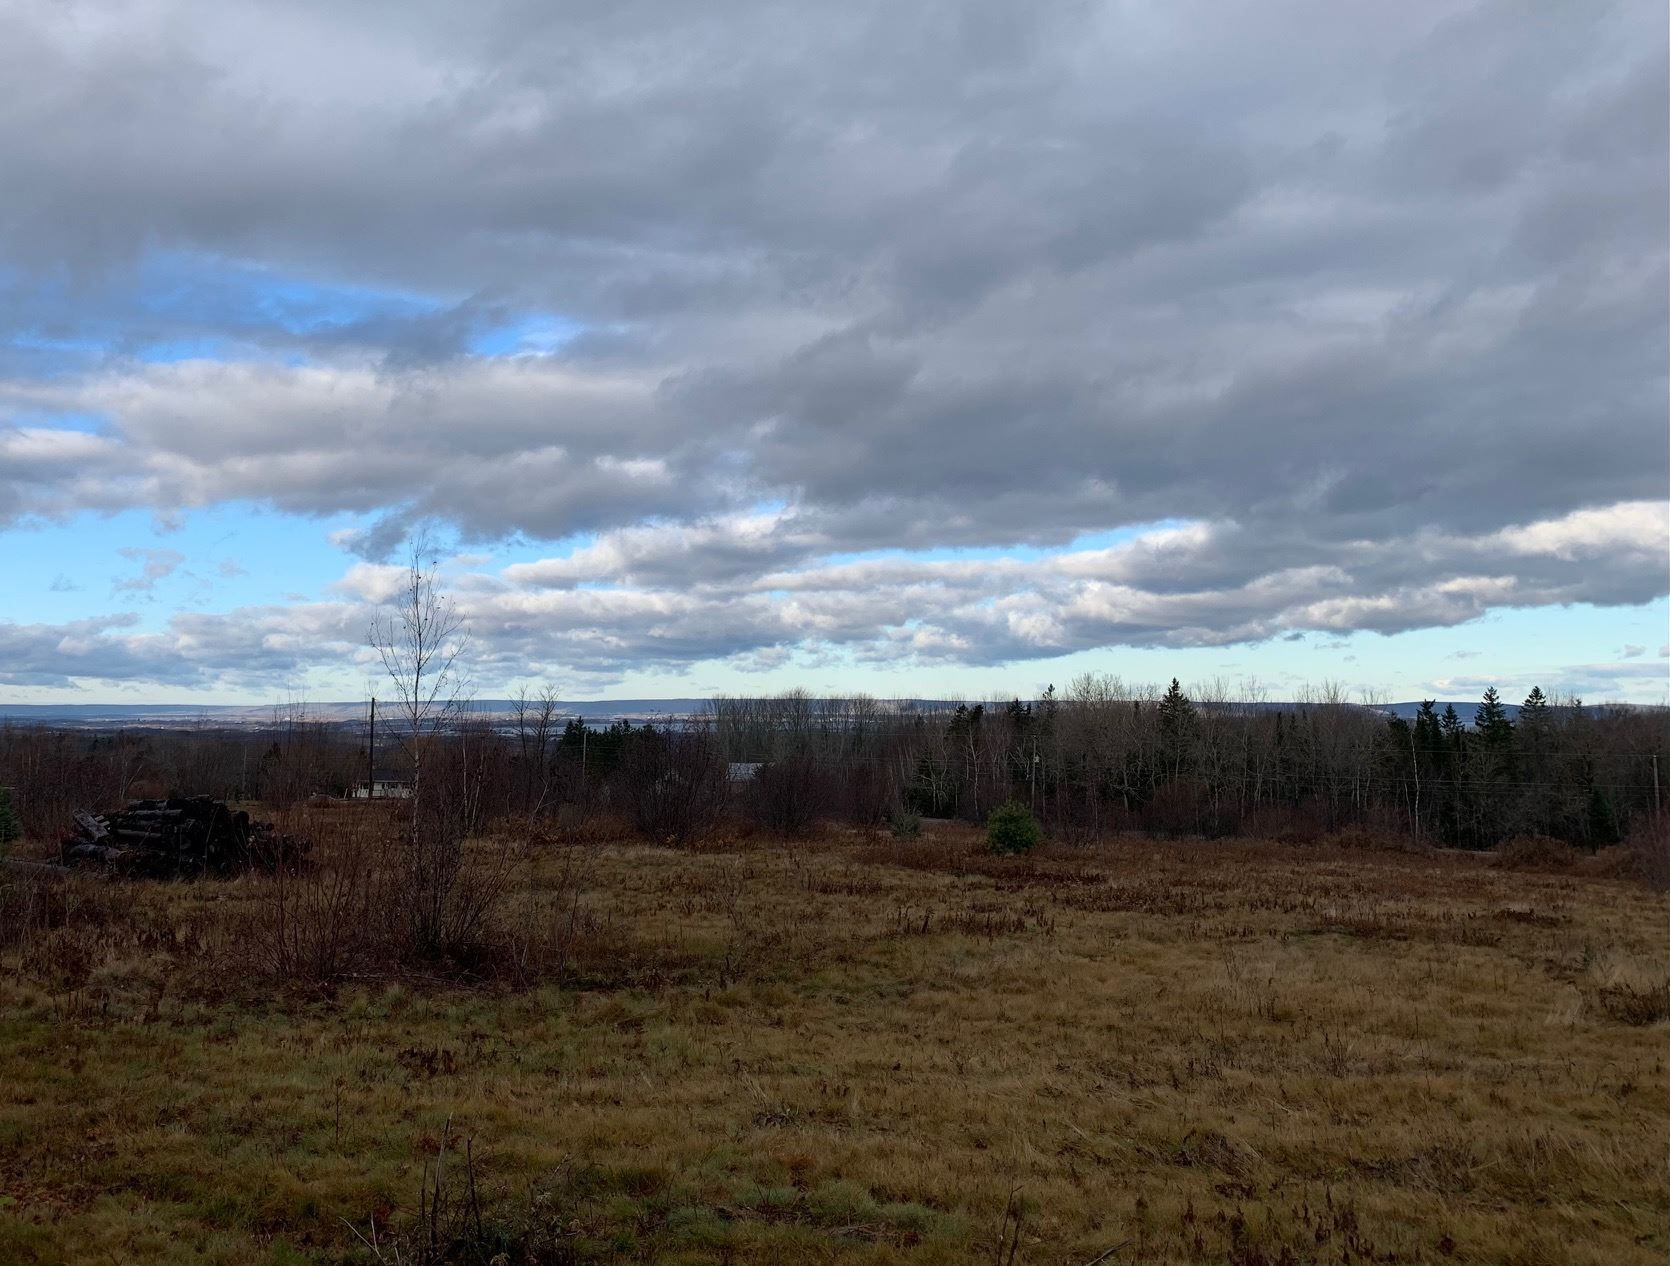 Main Photo: 136 West Brooklyn Road in West Brooklyn: 404-Kings County Vacant Land for sale (Annapolis Valley)  : MLS®# 202100888